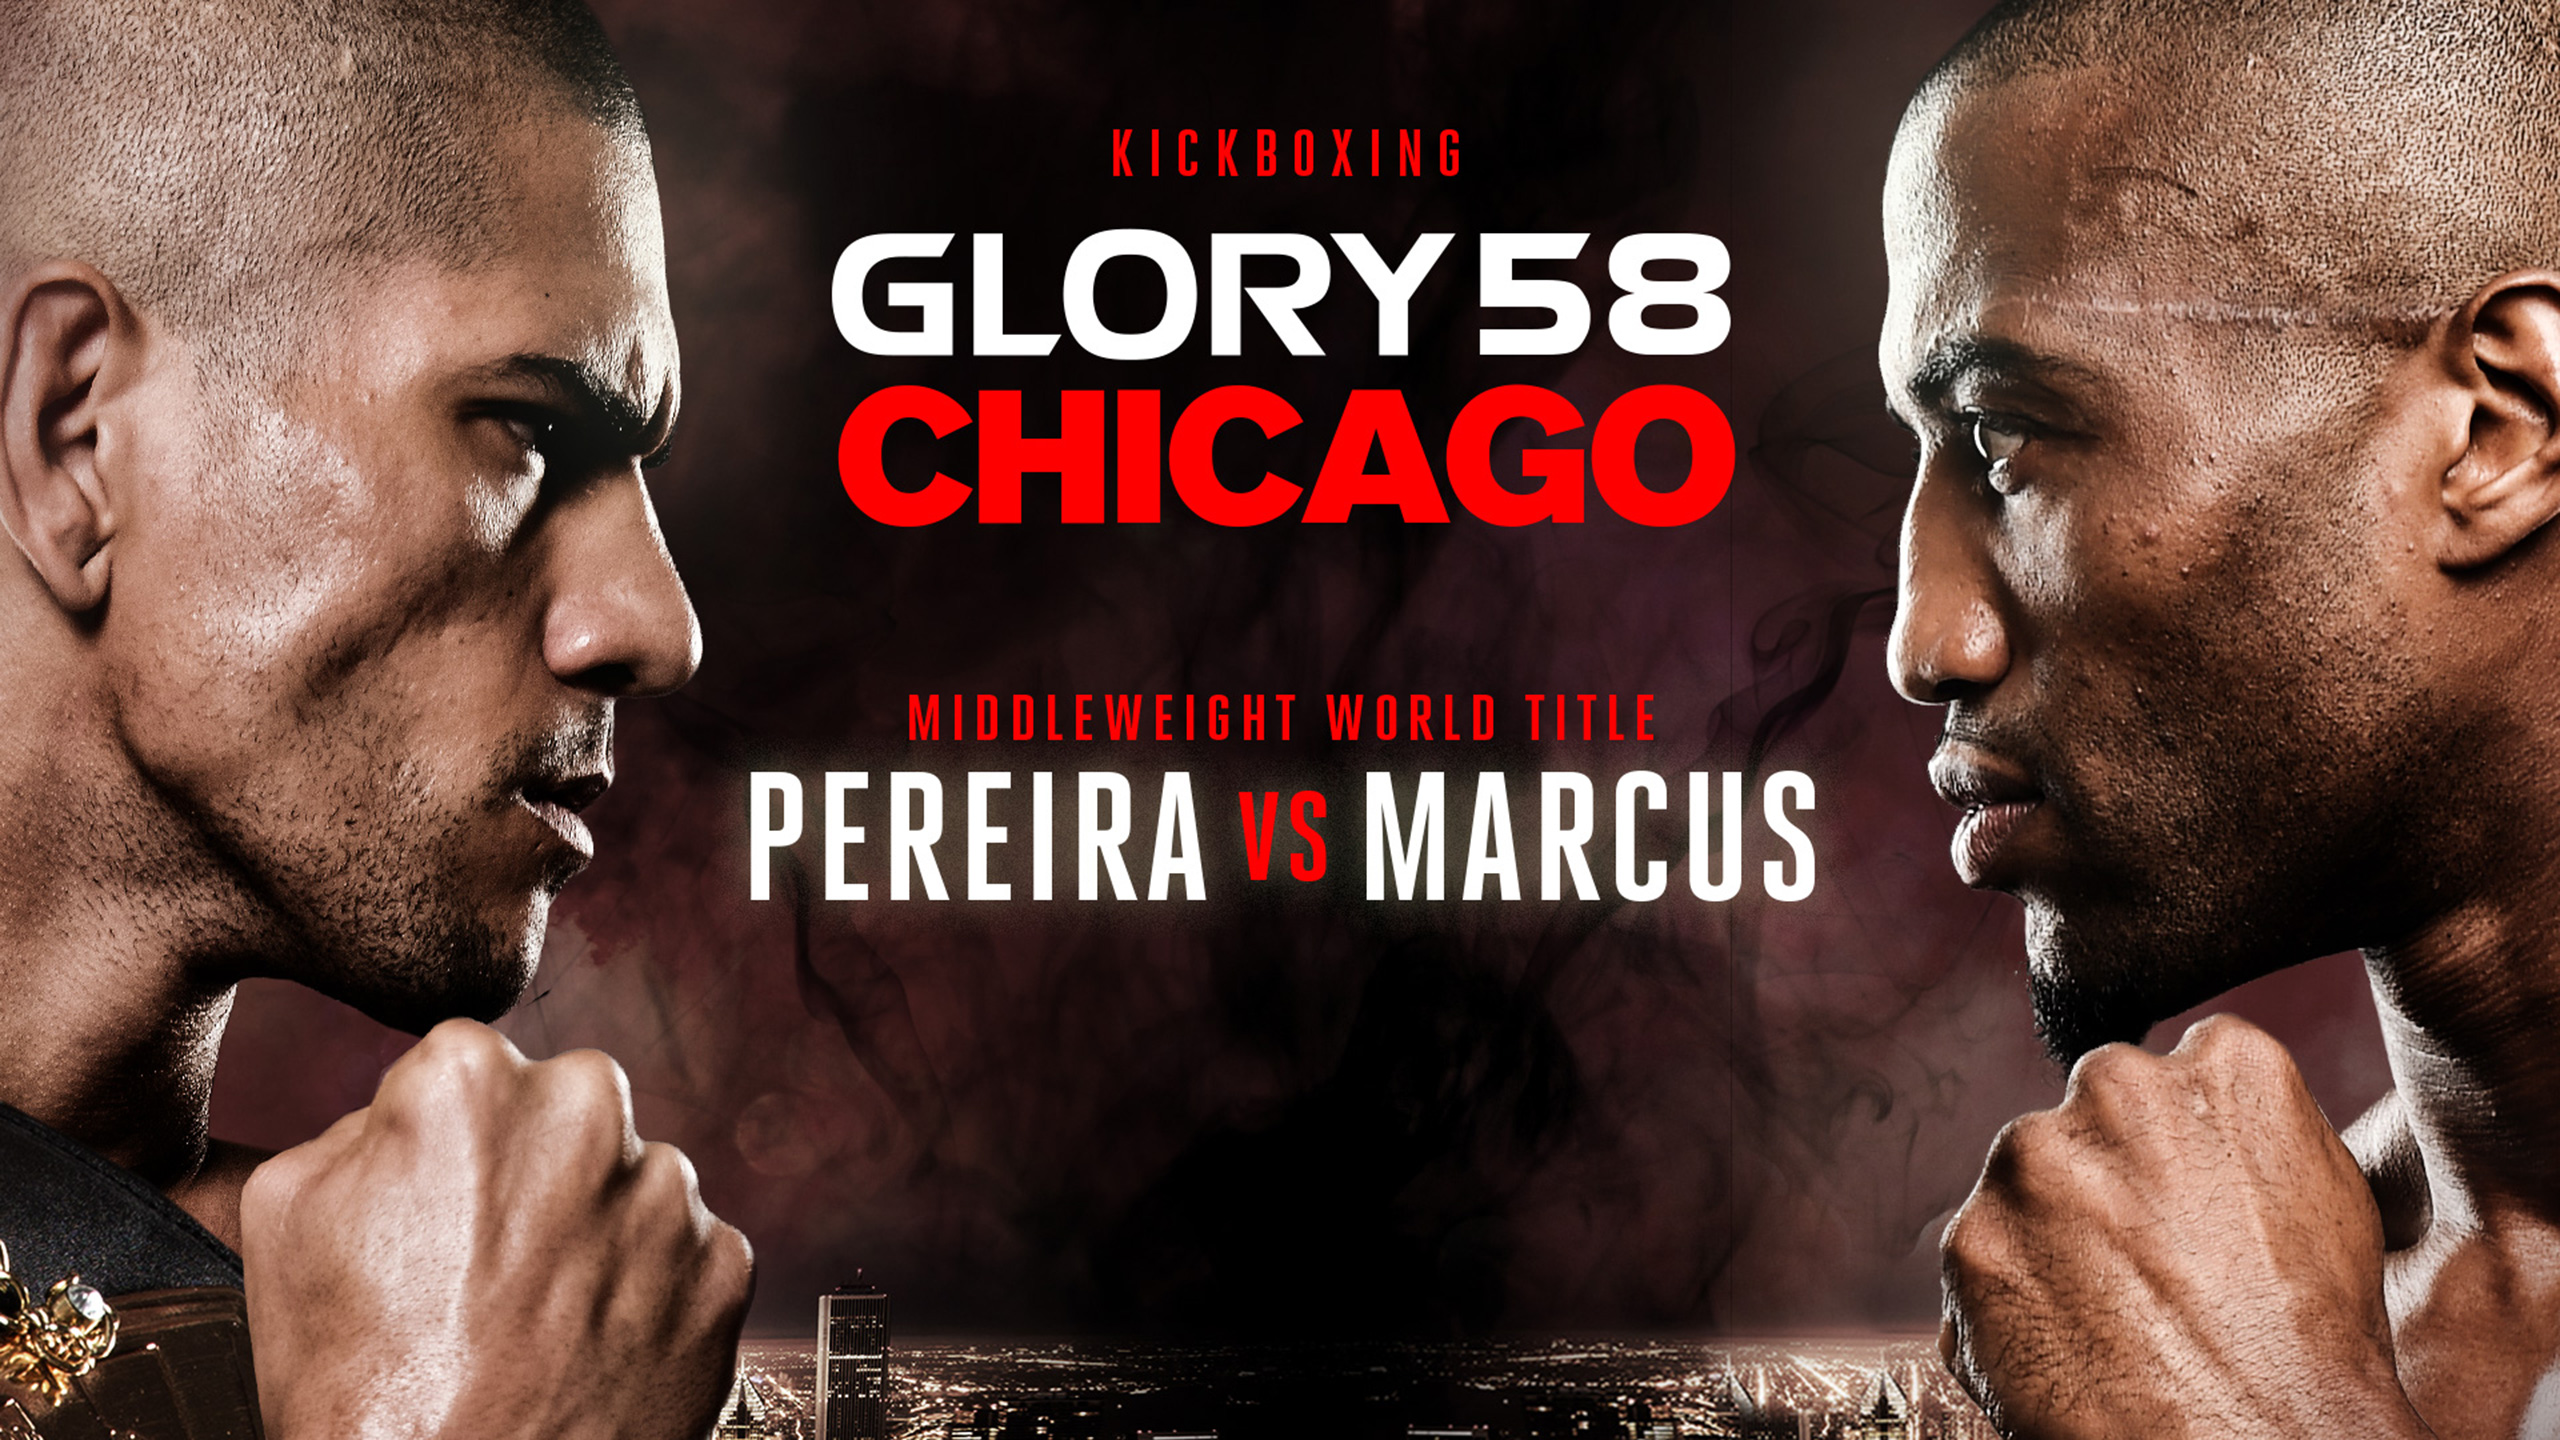 Kickboxing: GLORY 58